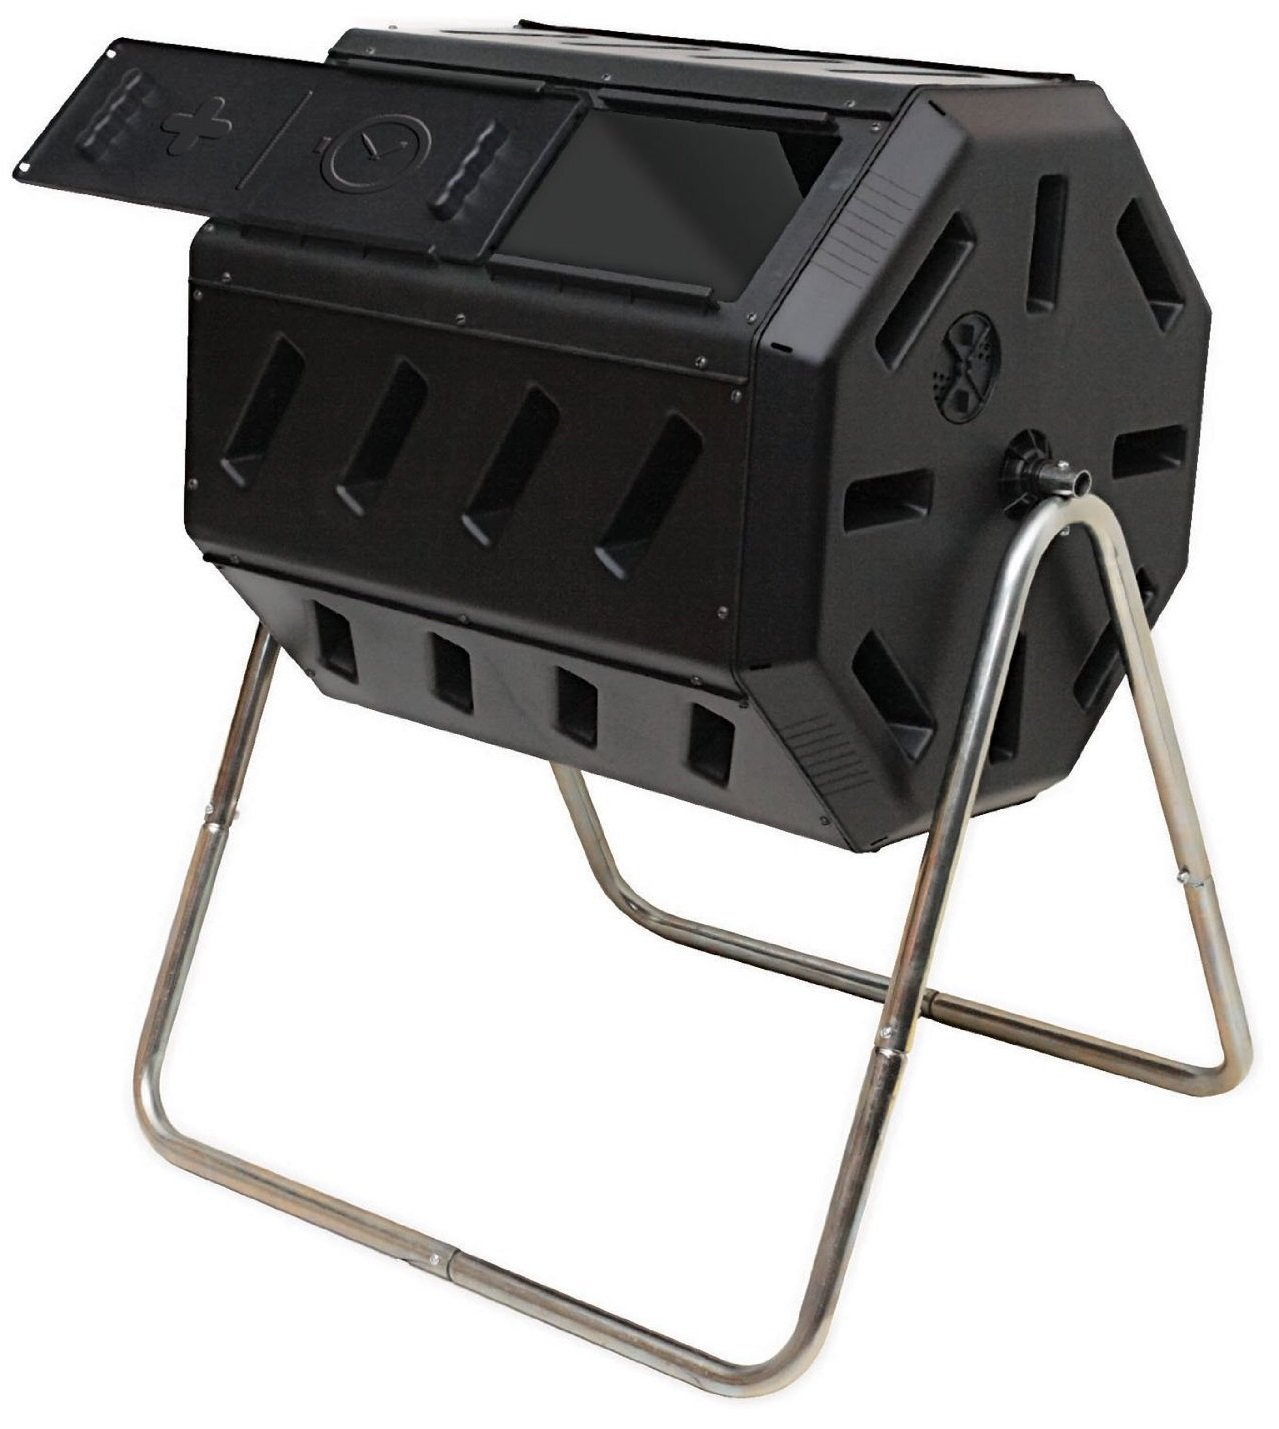 FCMP Outdoor IM4000 Tumbling Composter, 37 gallon, Black product image